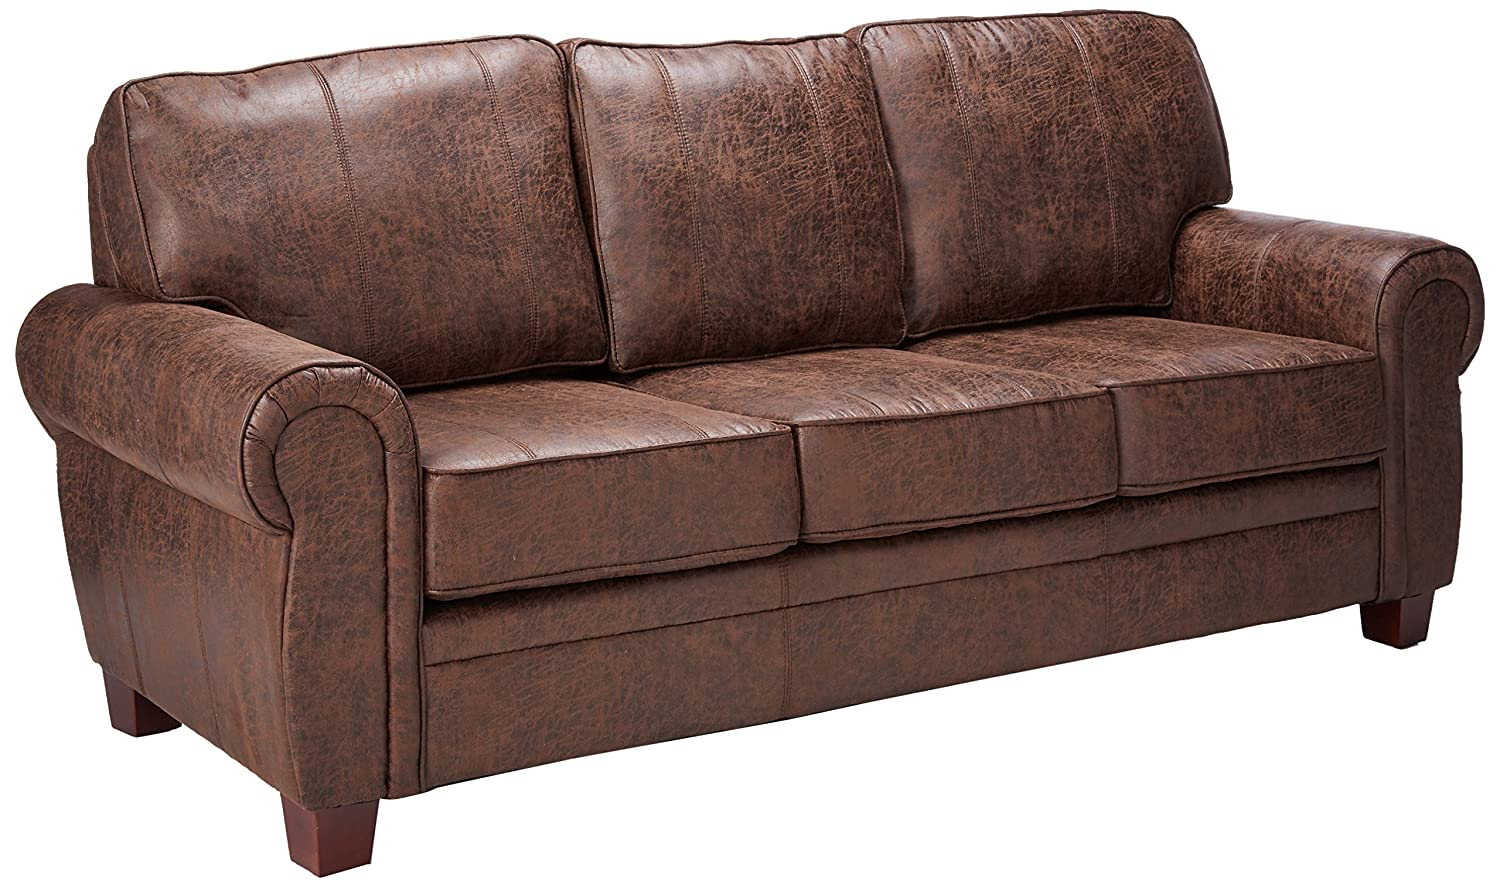 Allingham Elegant Sofa Brown